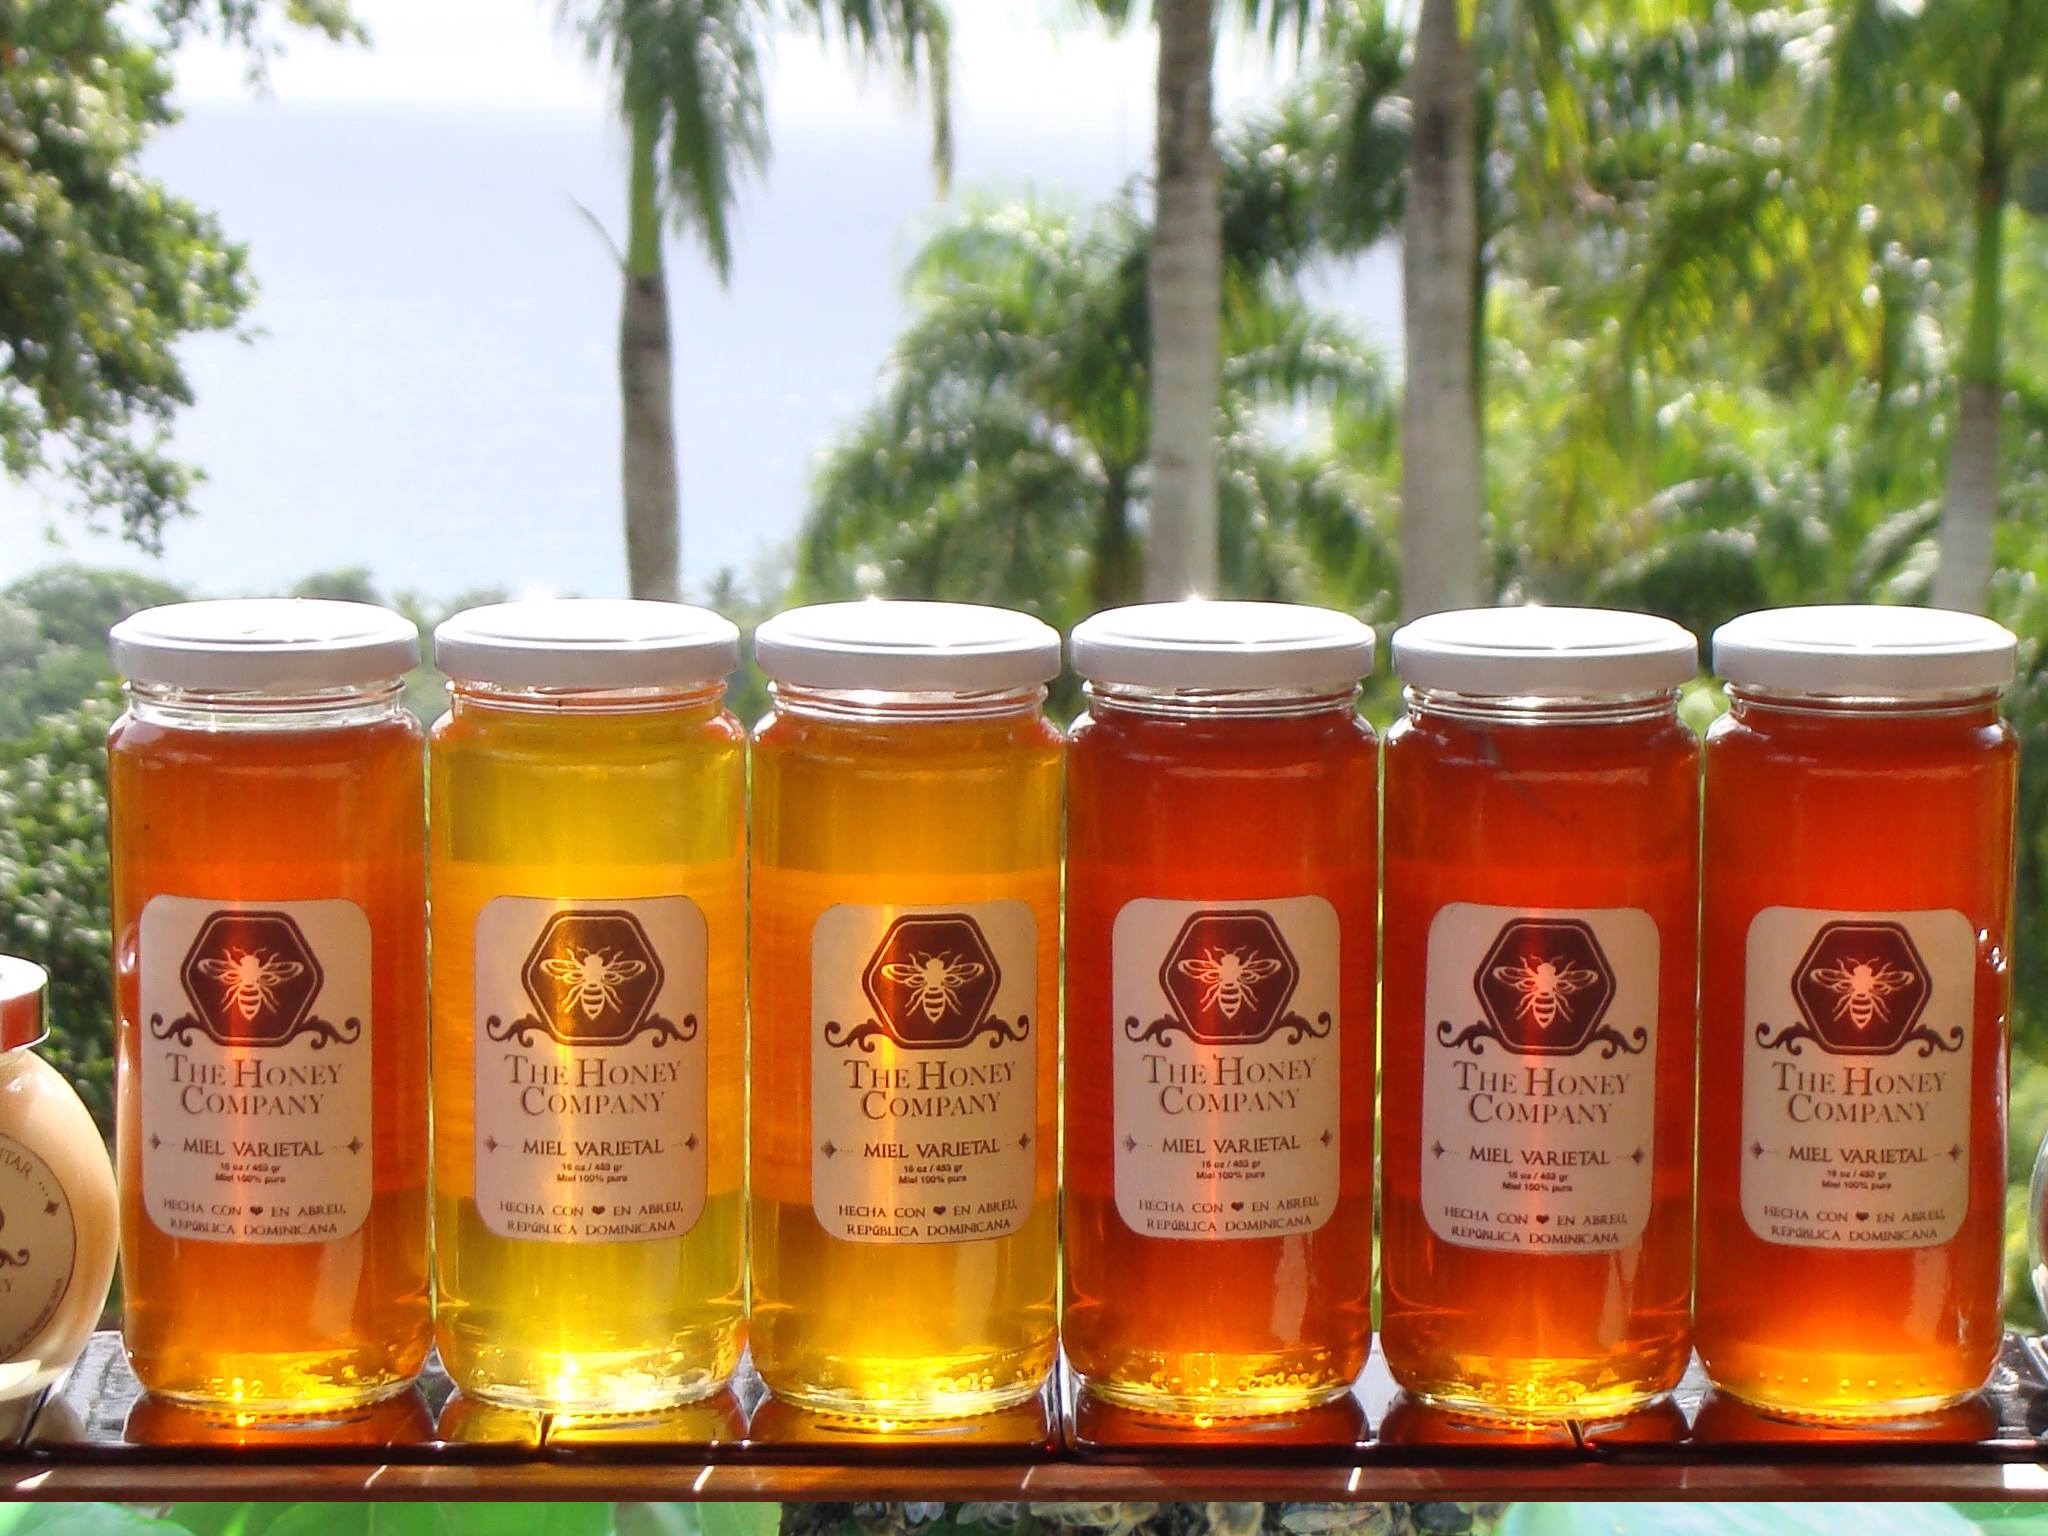 miel_varietal_the_honey_company